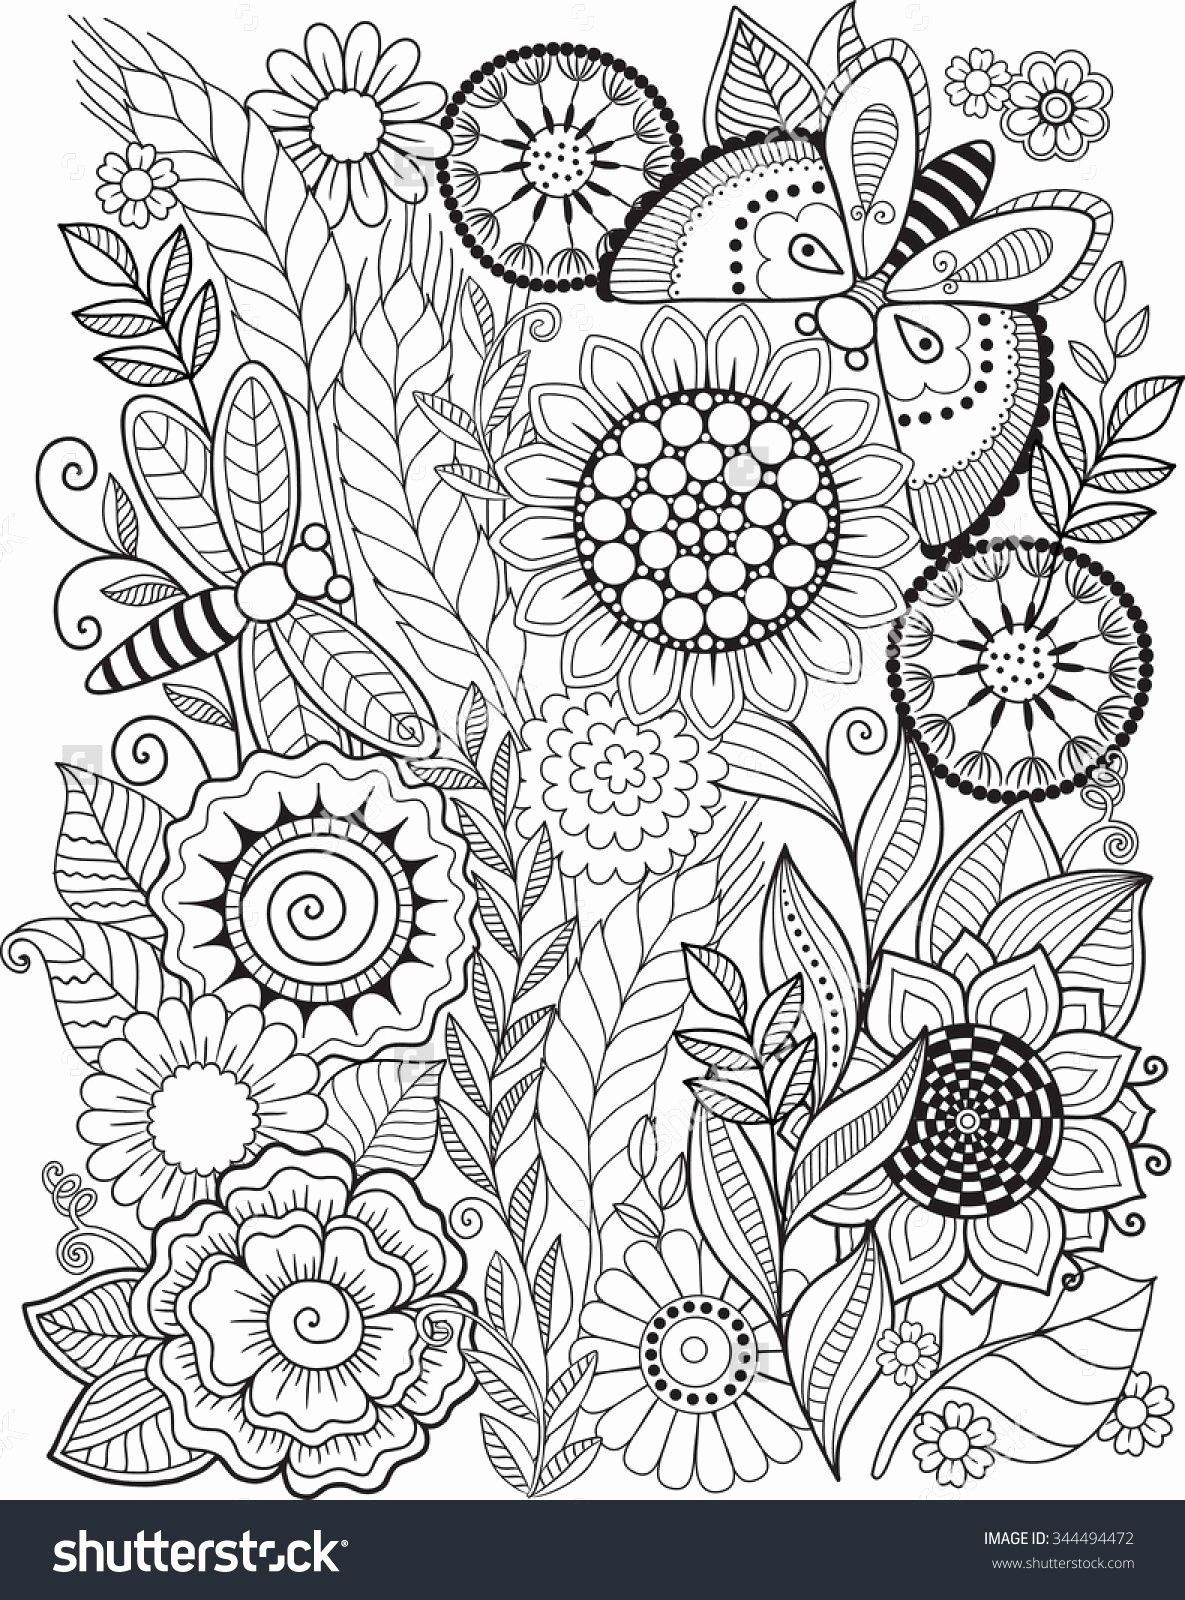 Beach Coloring Page For Adults Summer Coloring Pages For Kids Summer Coloring Pages Mandala Coloring Pages Flower Coloring Pages